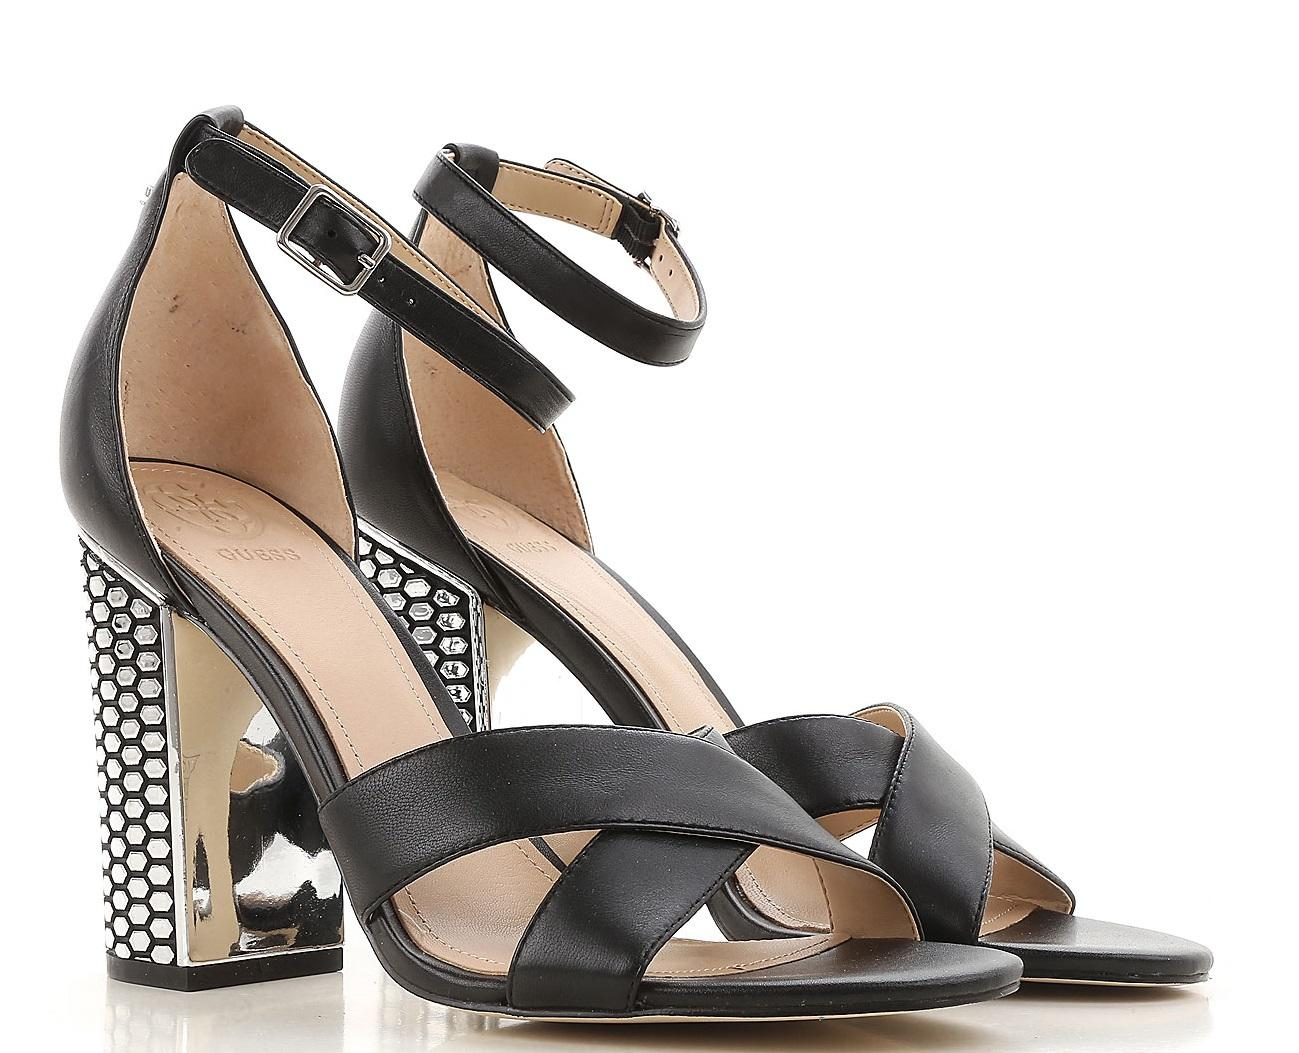 8adb01d0a Guess High Sandals Abriana, In Leather Black - Shop Online At Best ...